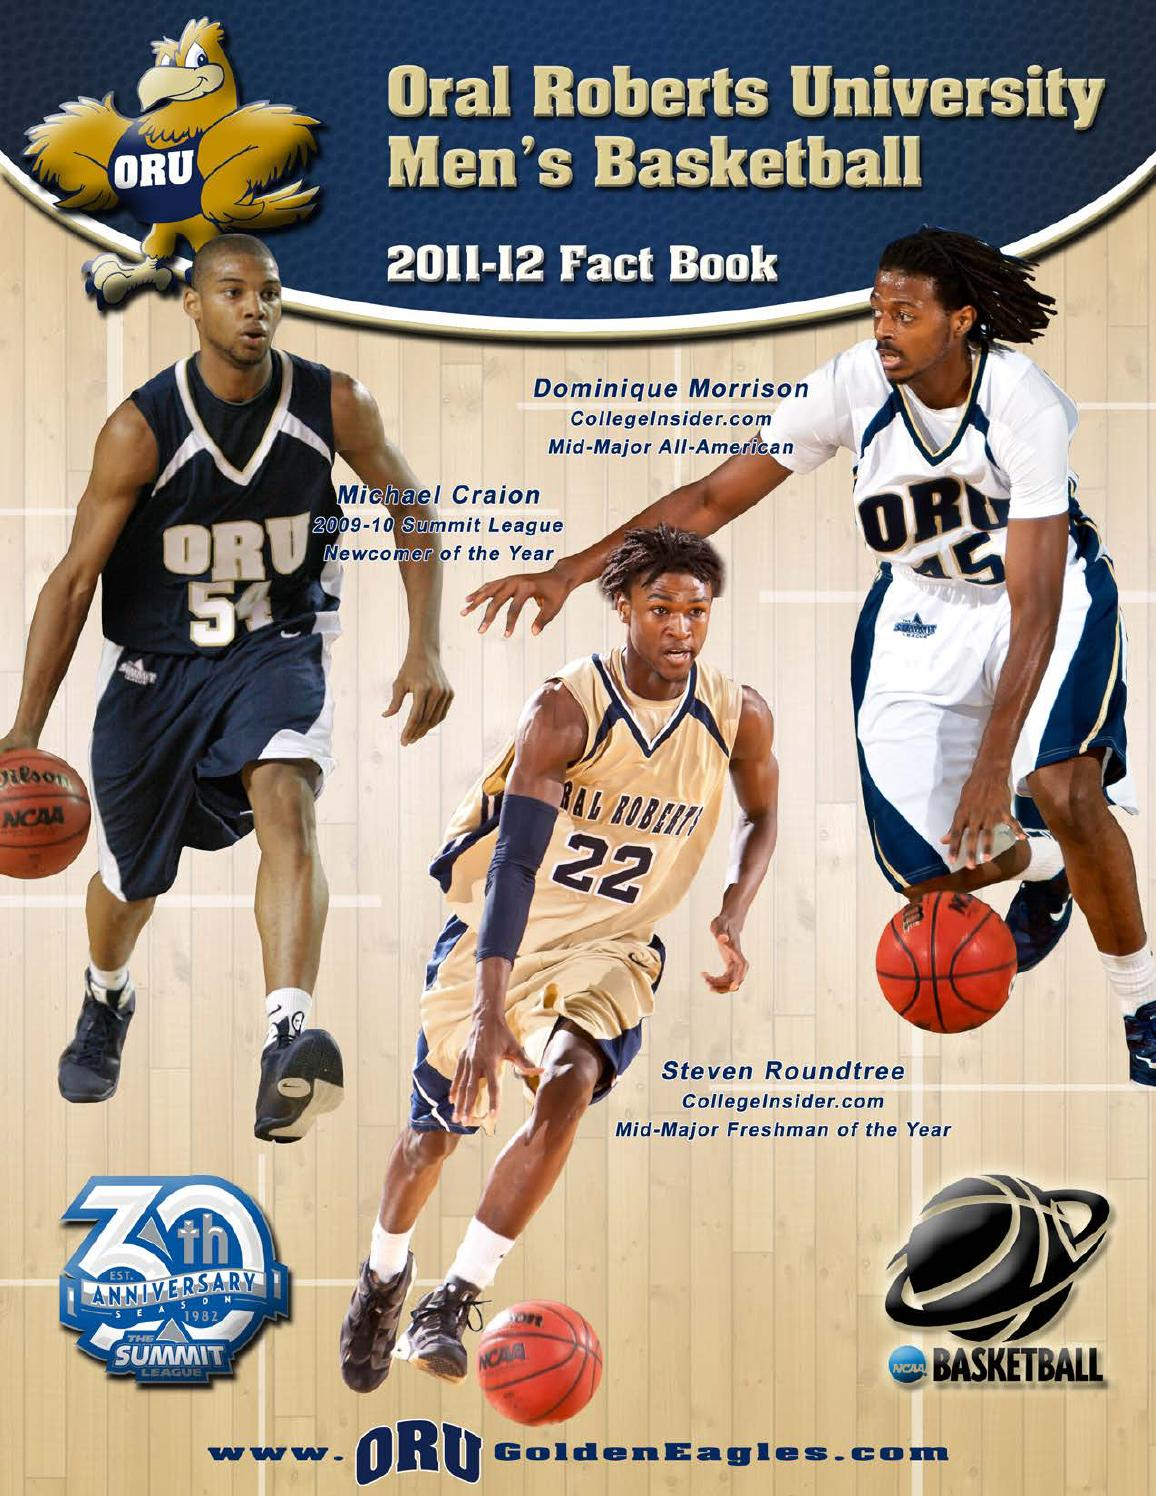 11 12 Mbb Media Guide By Oru Athletics Issuu Ask anything you want to learn about boris chen by getting answers on askfm. 11 12 mbb media guide by oru athletics